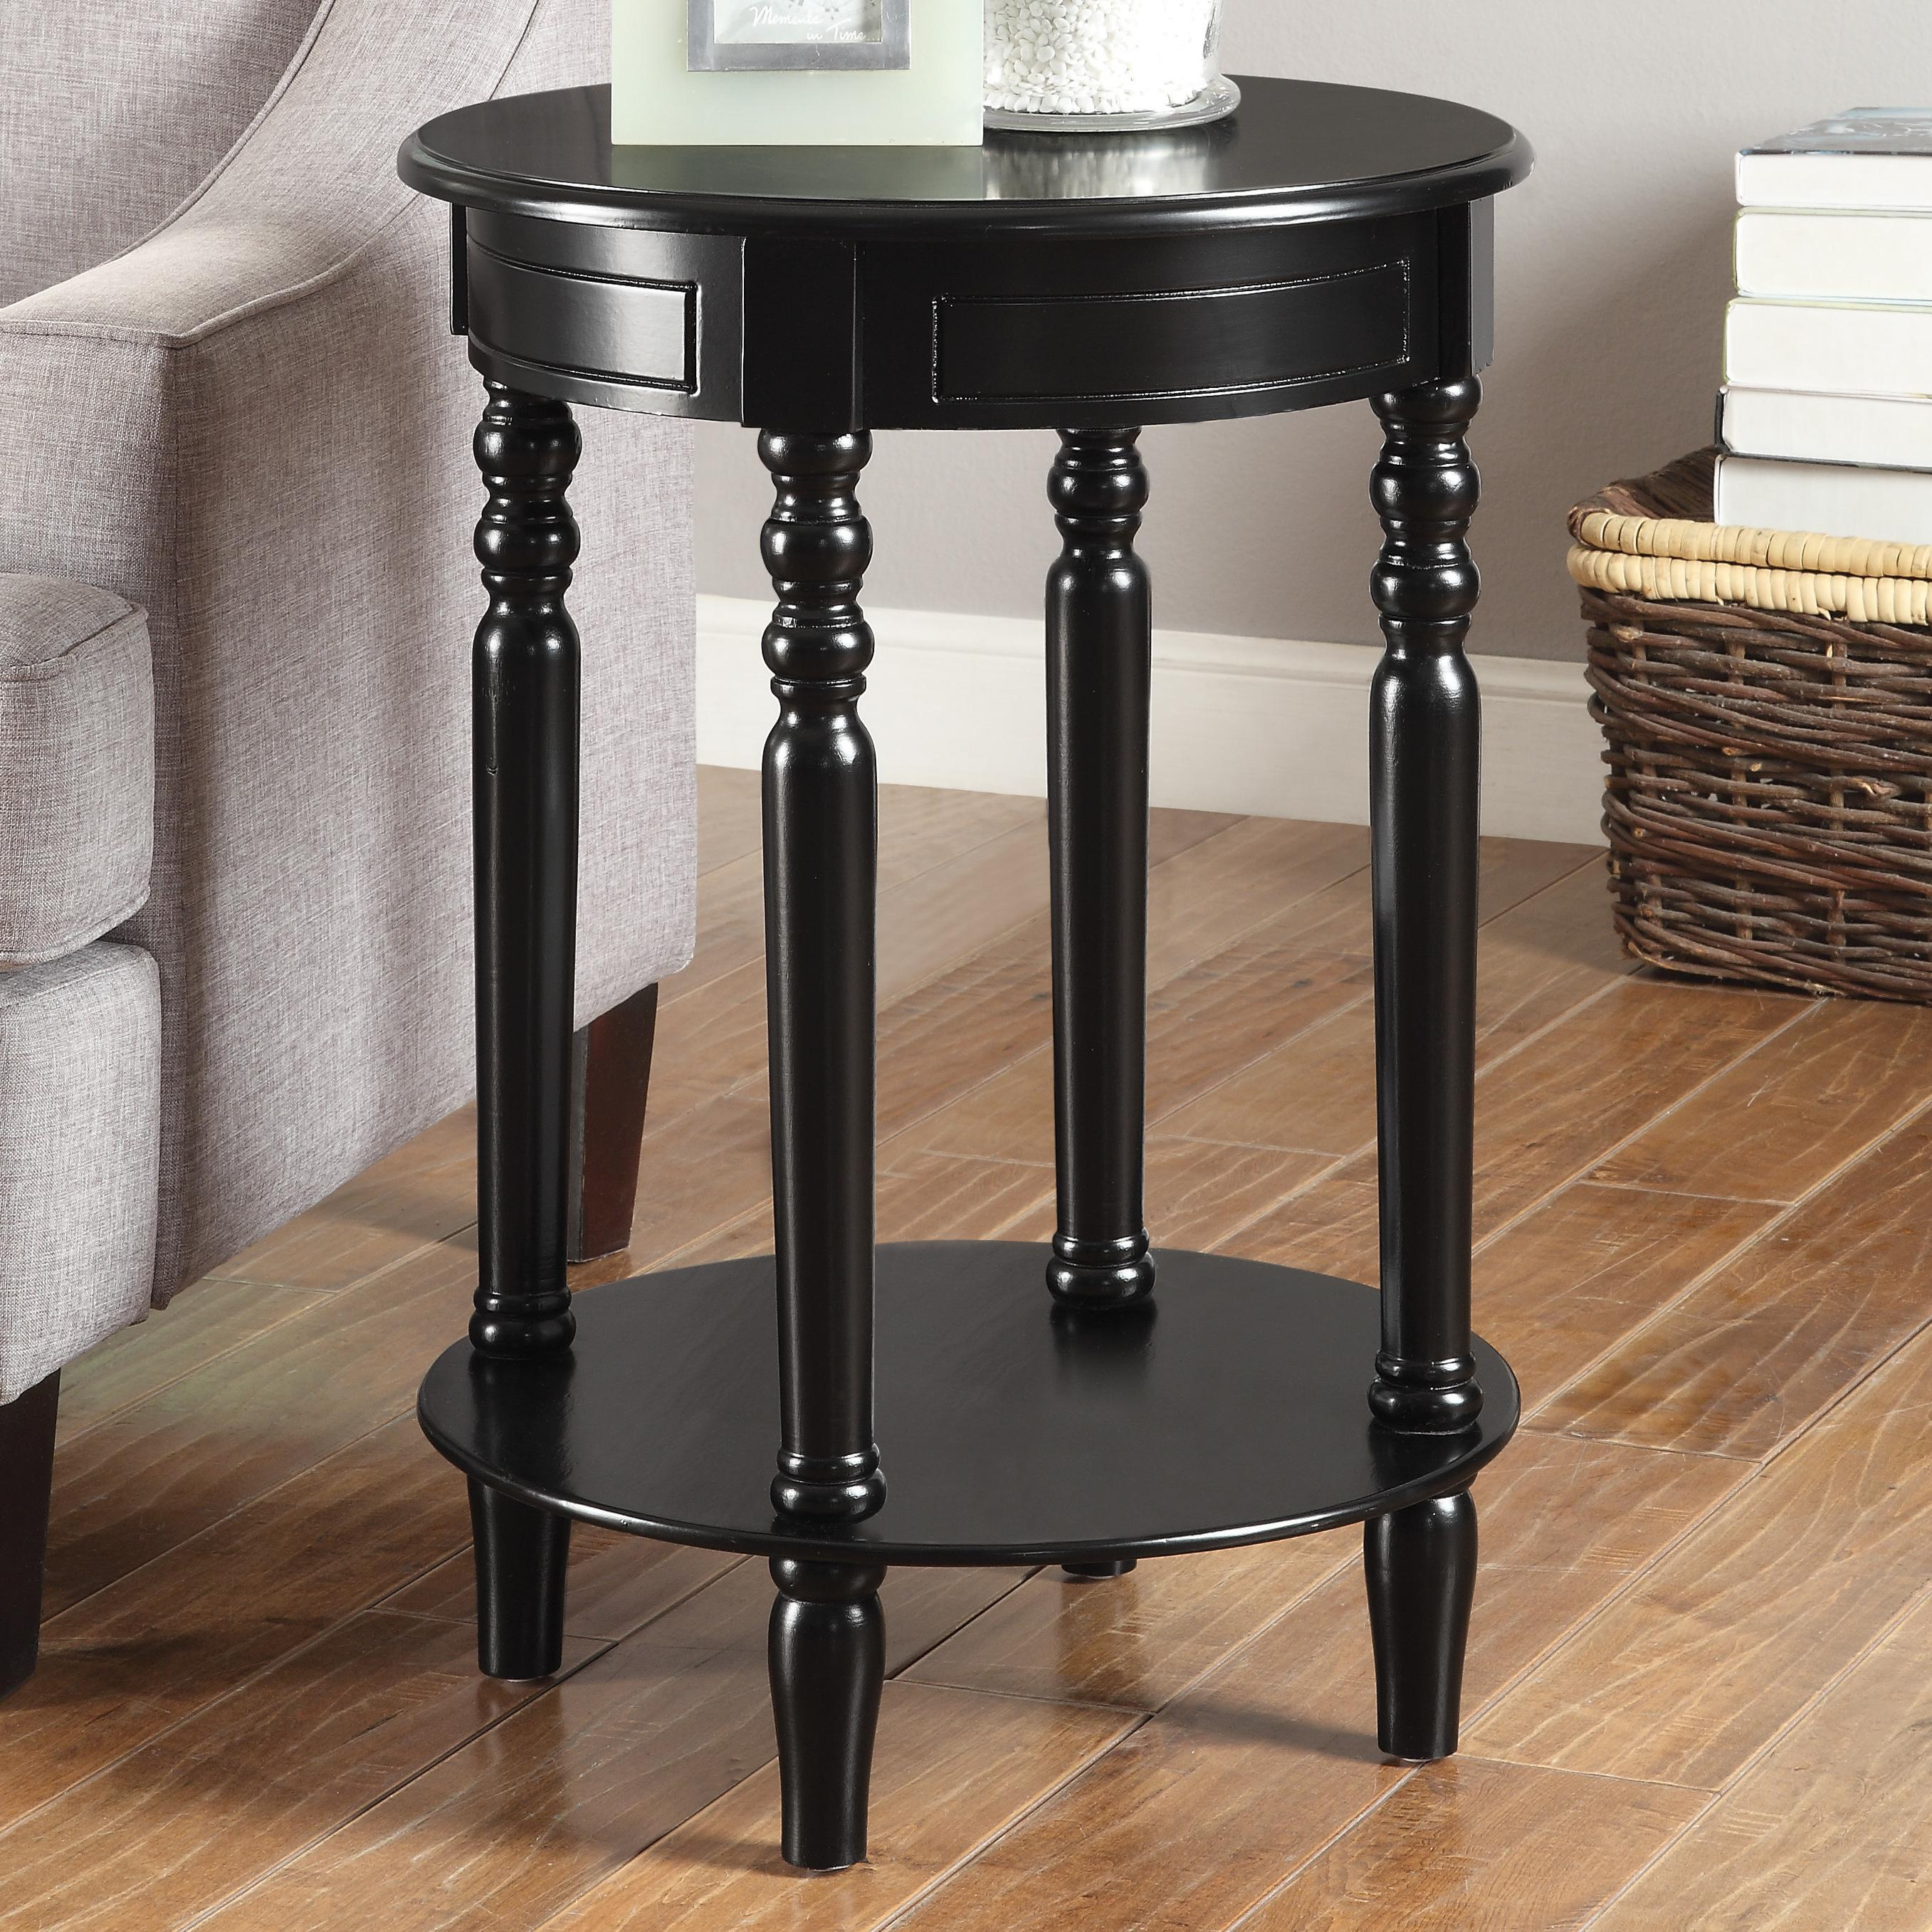 gorgeous small black outdoor side table target wicker kmart white argos round wooden metal glass gloss wood ana tables square bedside pedestal studio marble ideas lamps and accent